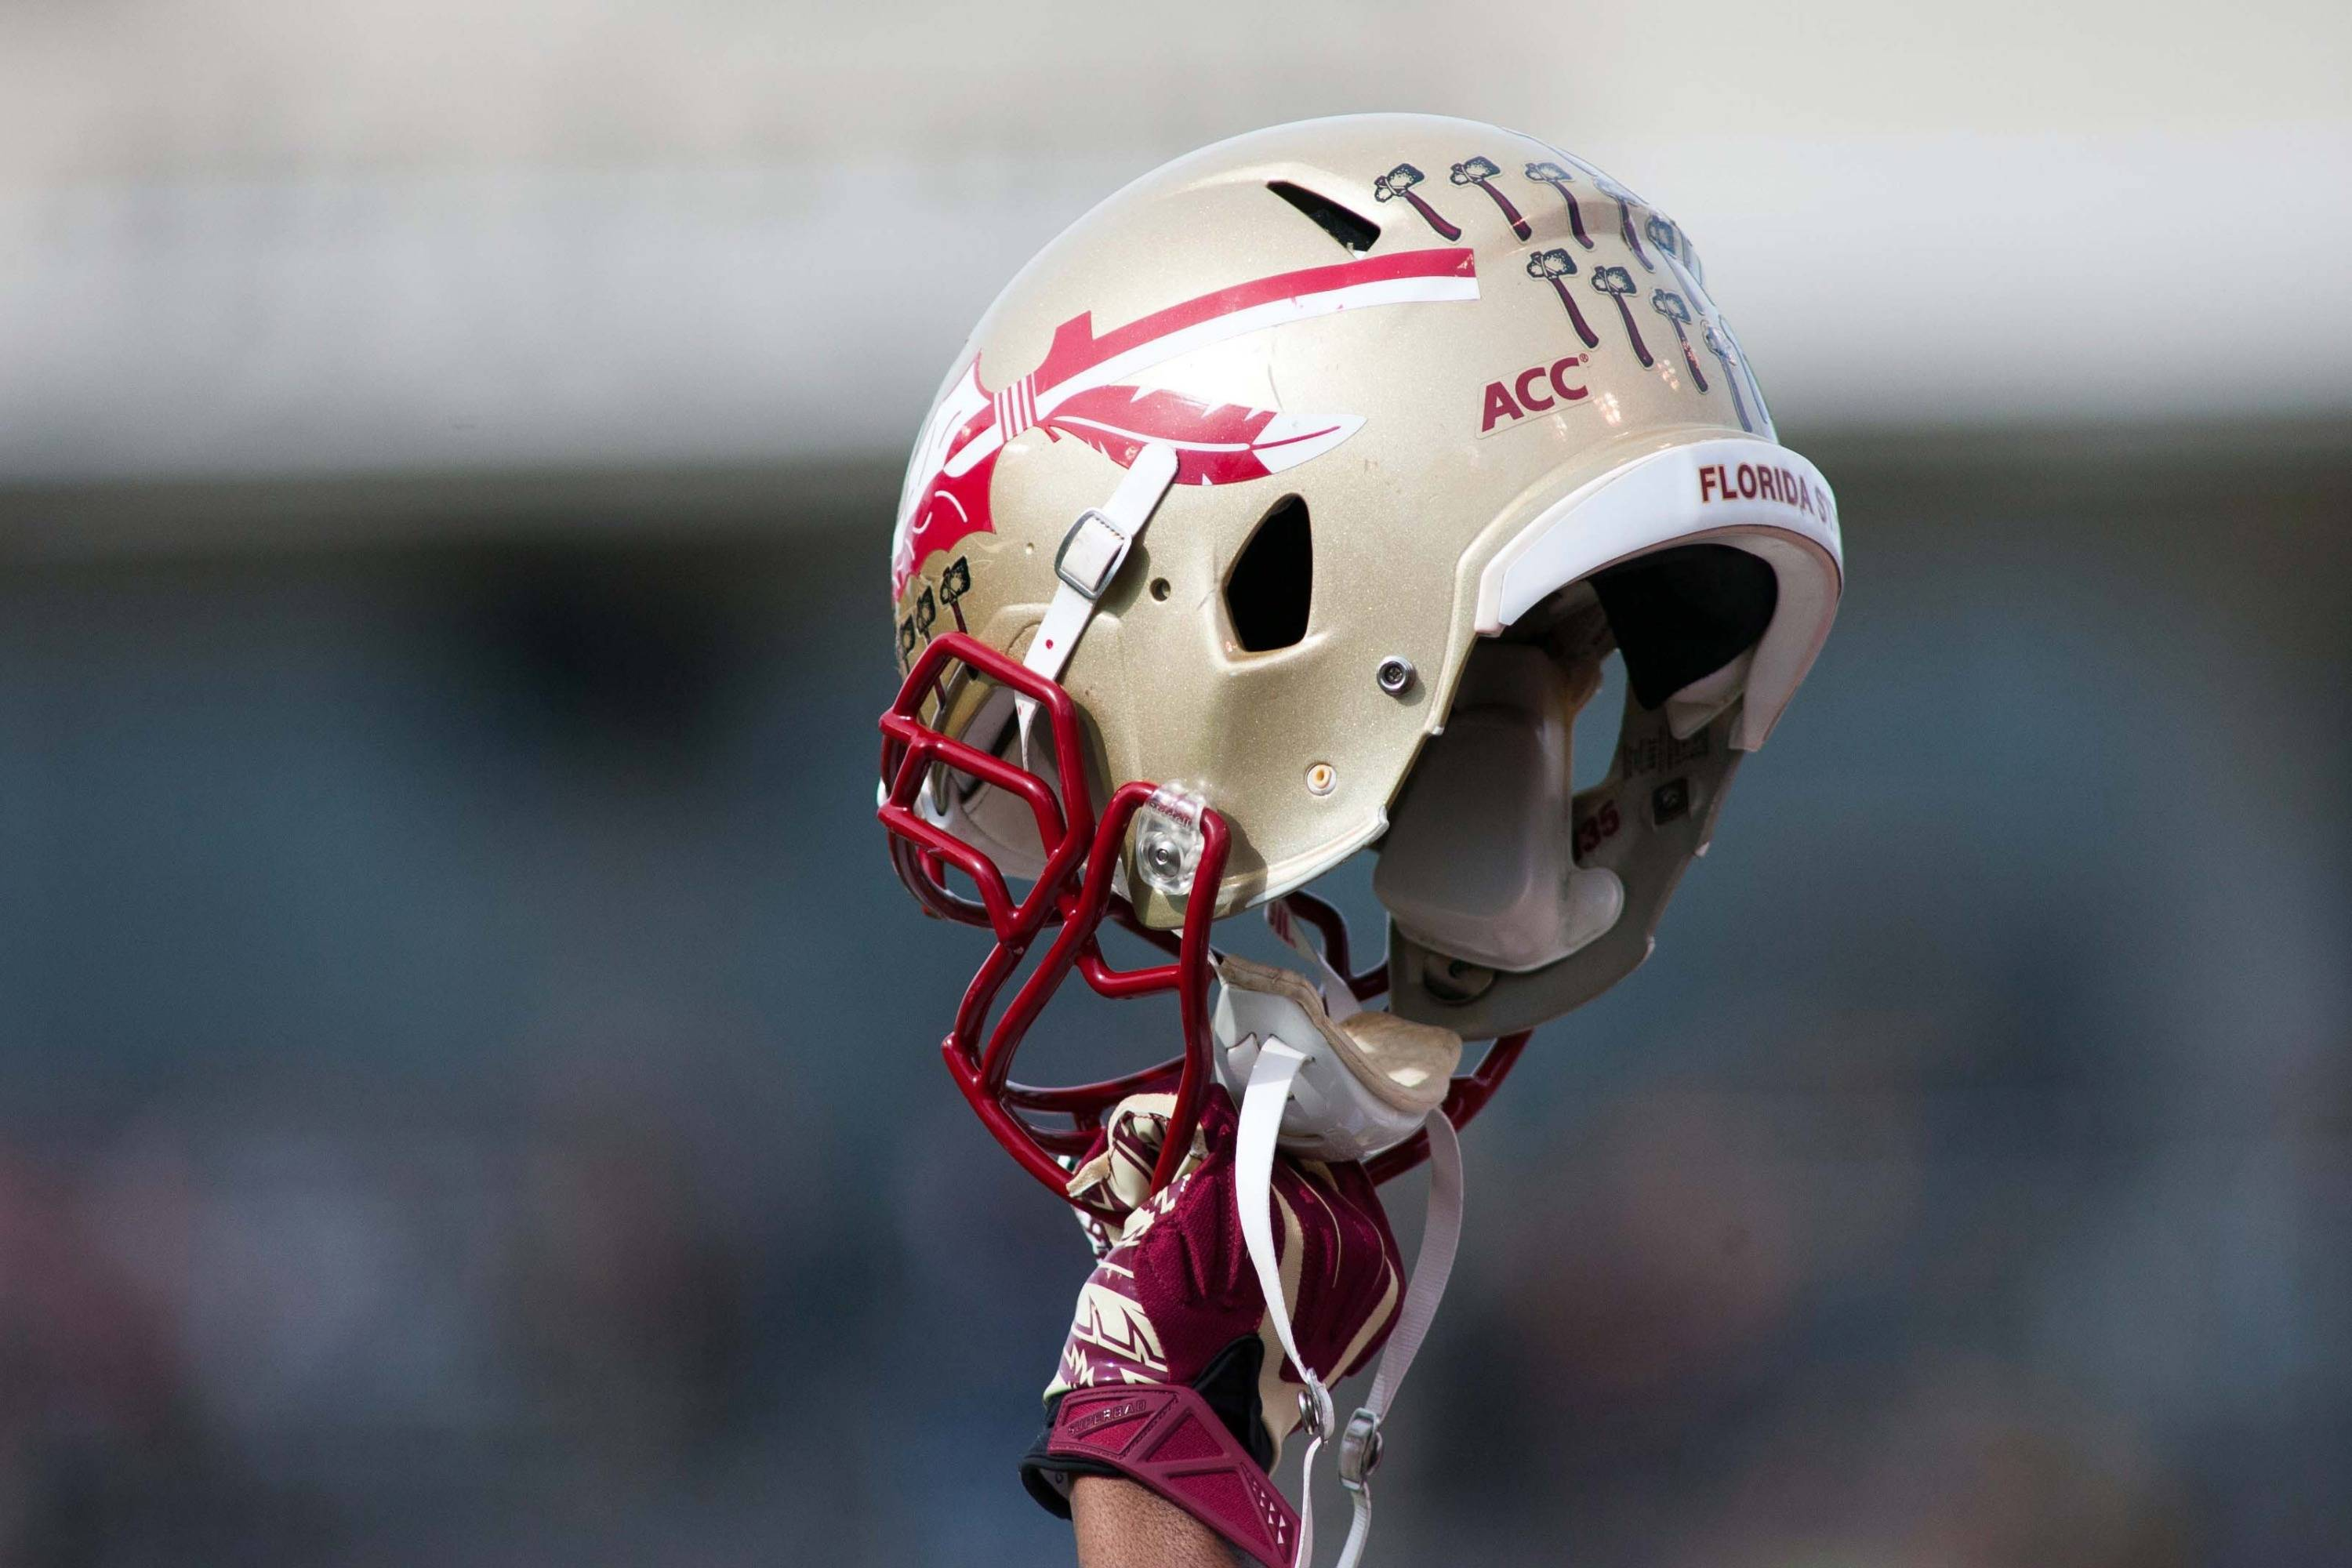 A Florida State Seminoles player holds up a helmet prior to kickoff. Mandatory Credit: Jeremy Brevard-USA TODAY Sports